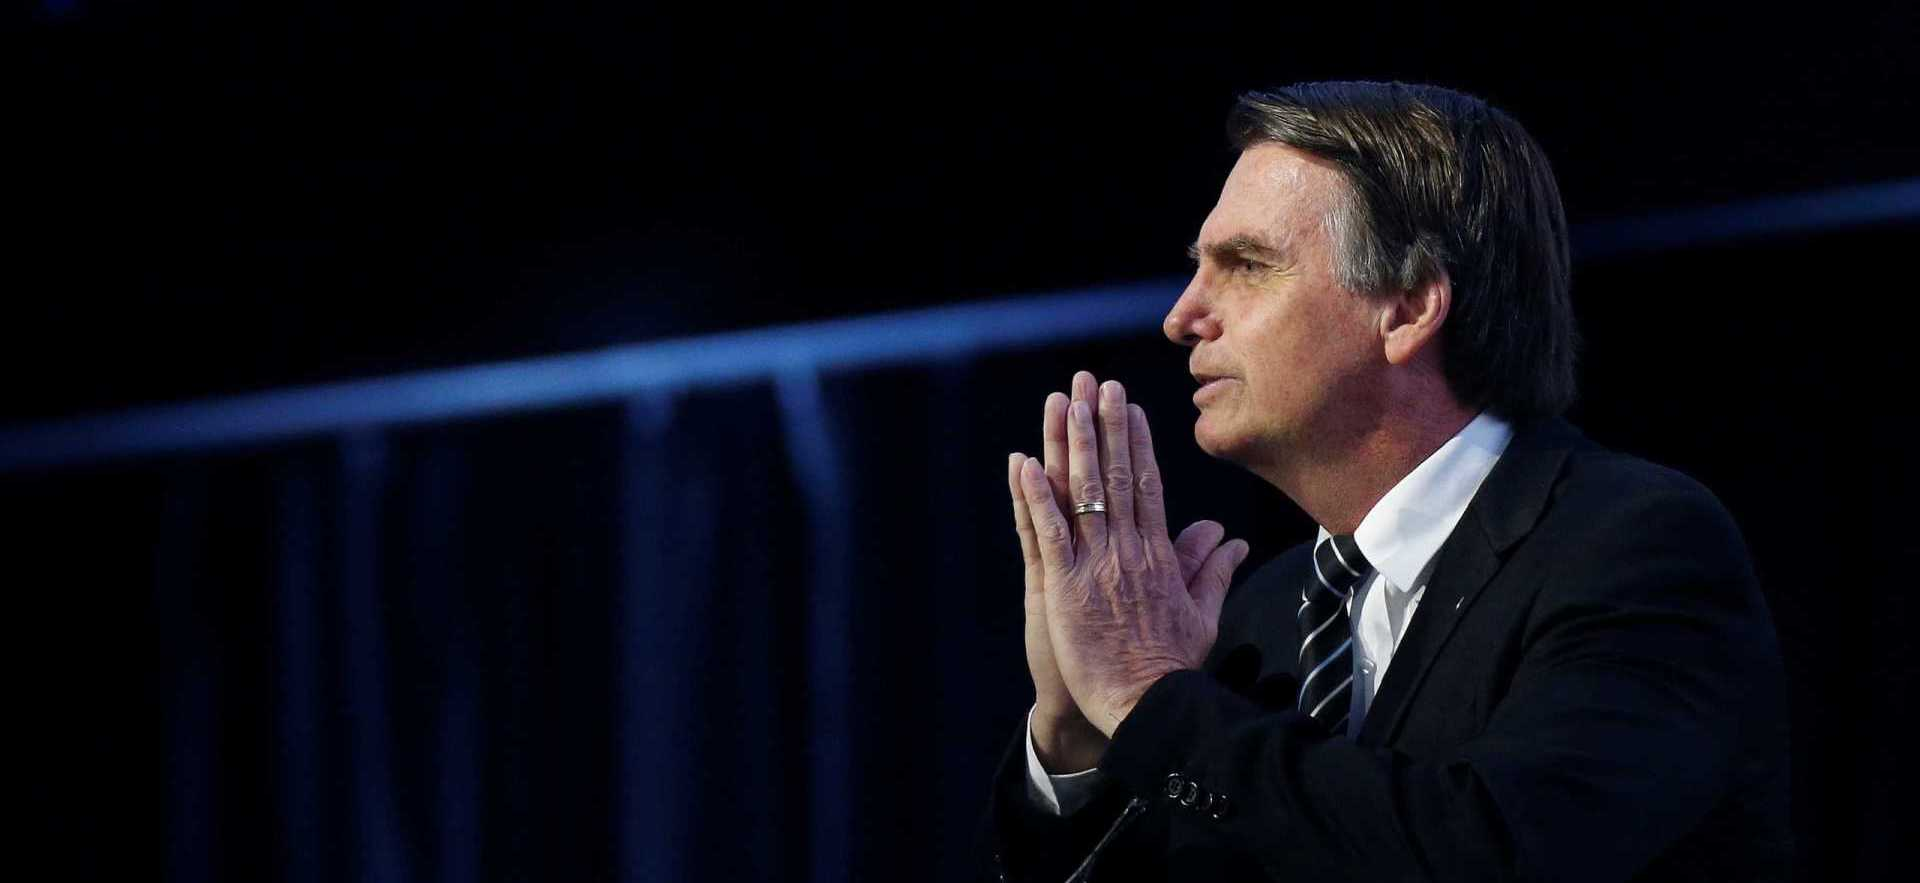 Bolsonaro Brazil 2018 Election